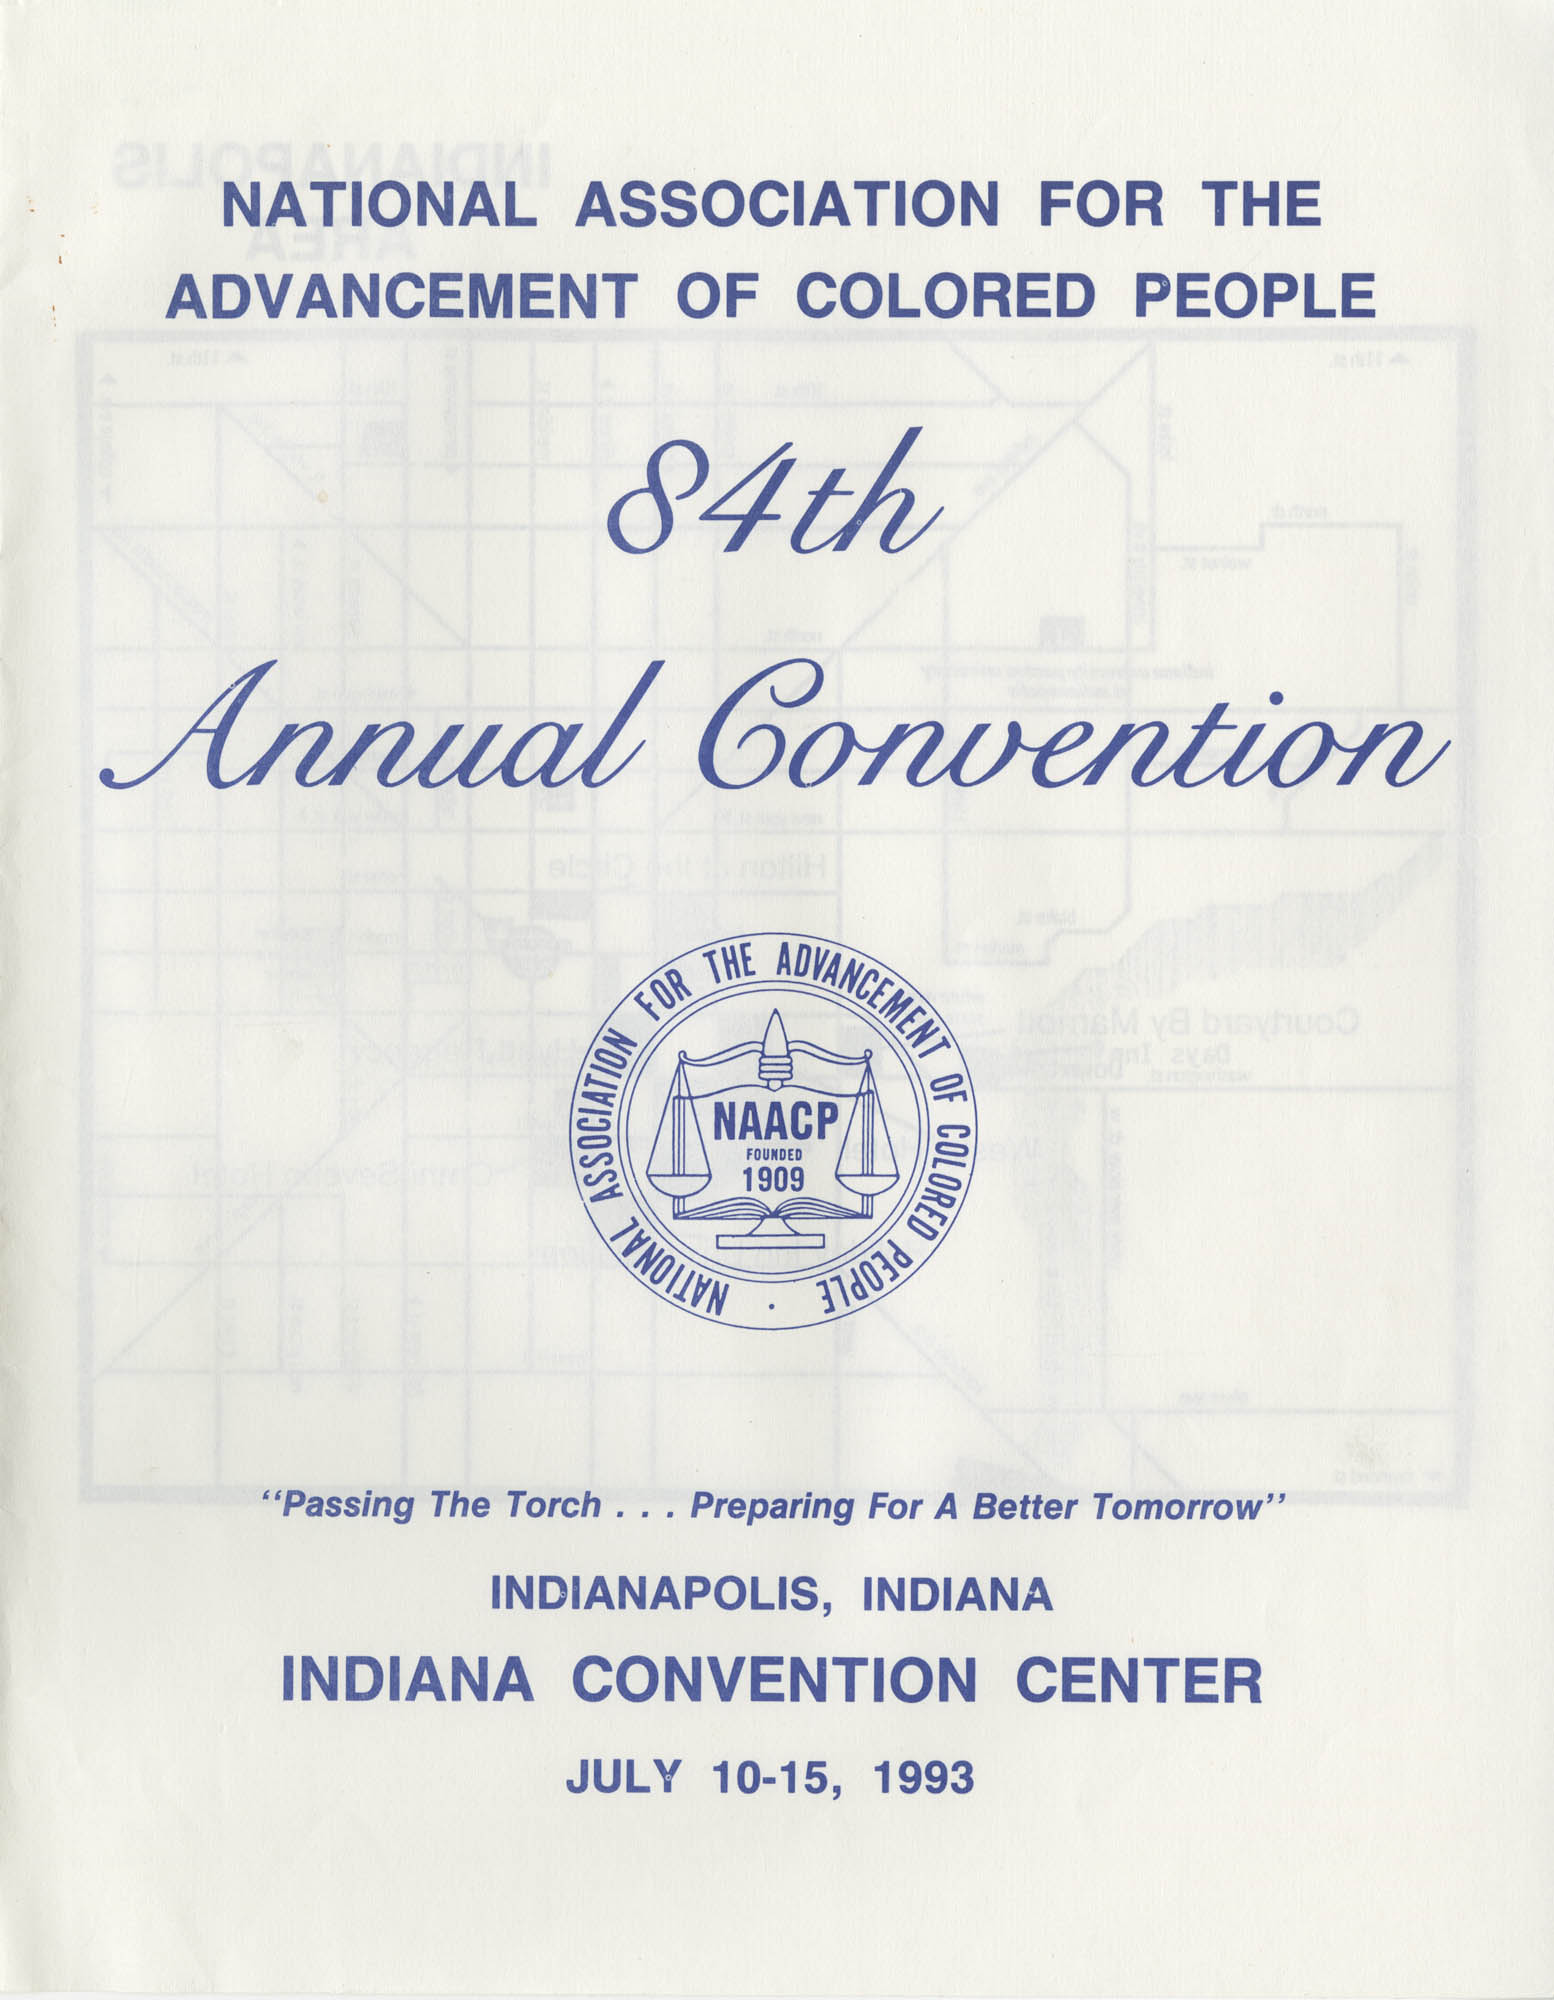 NAACP 84th Annual Convention, July 10-15, 1993